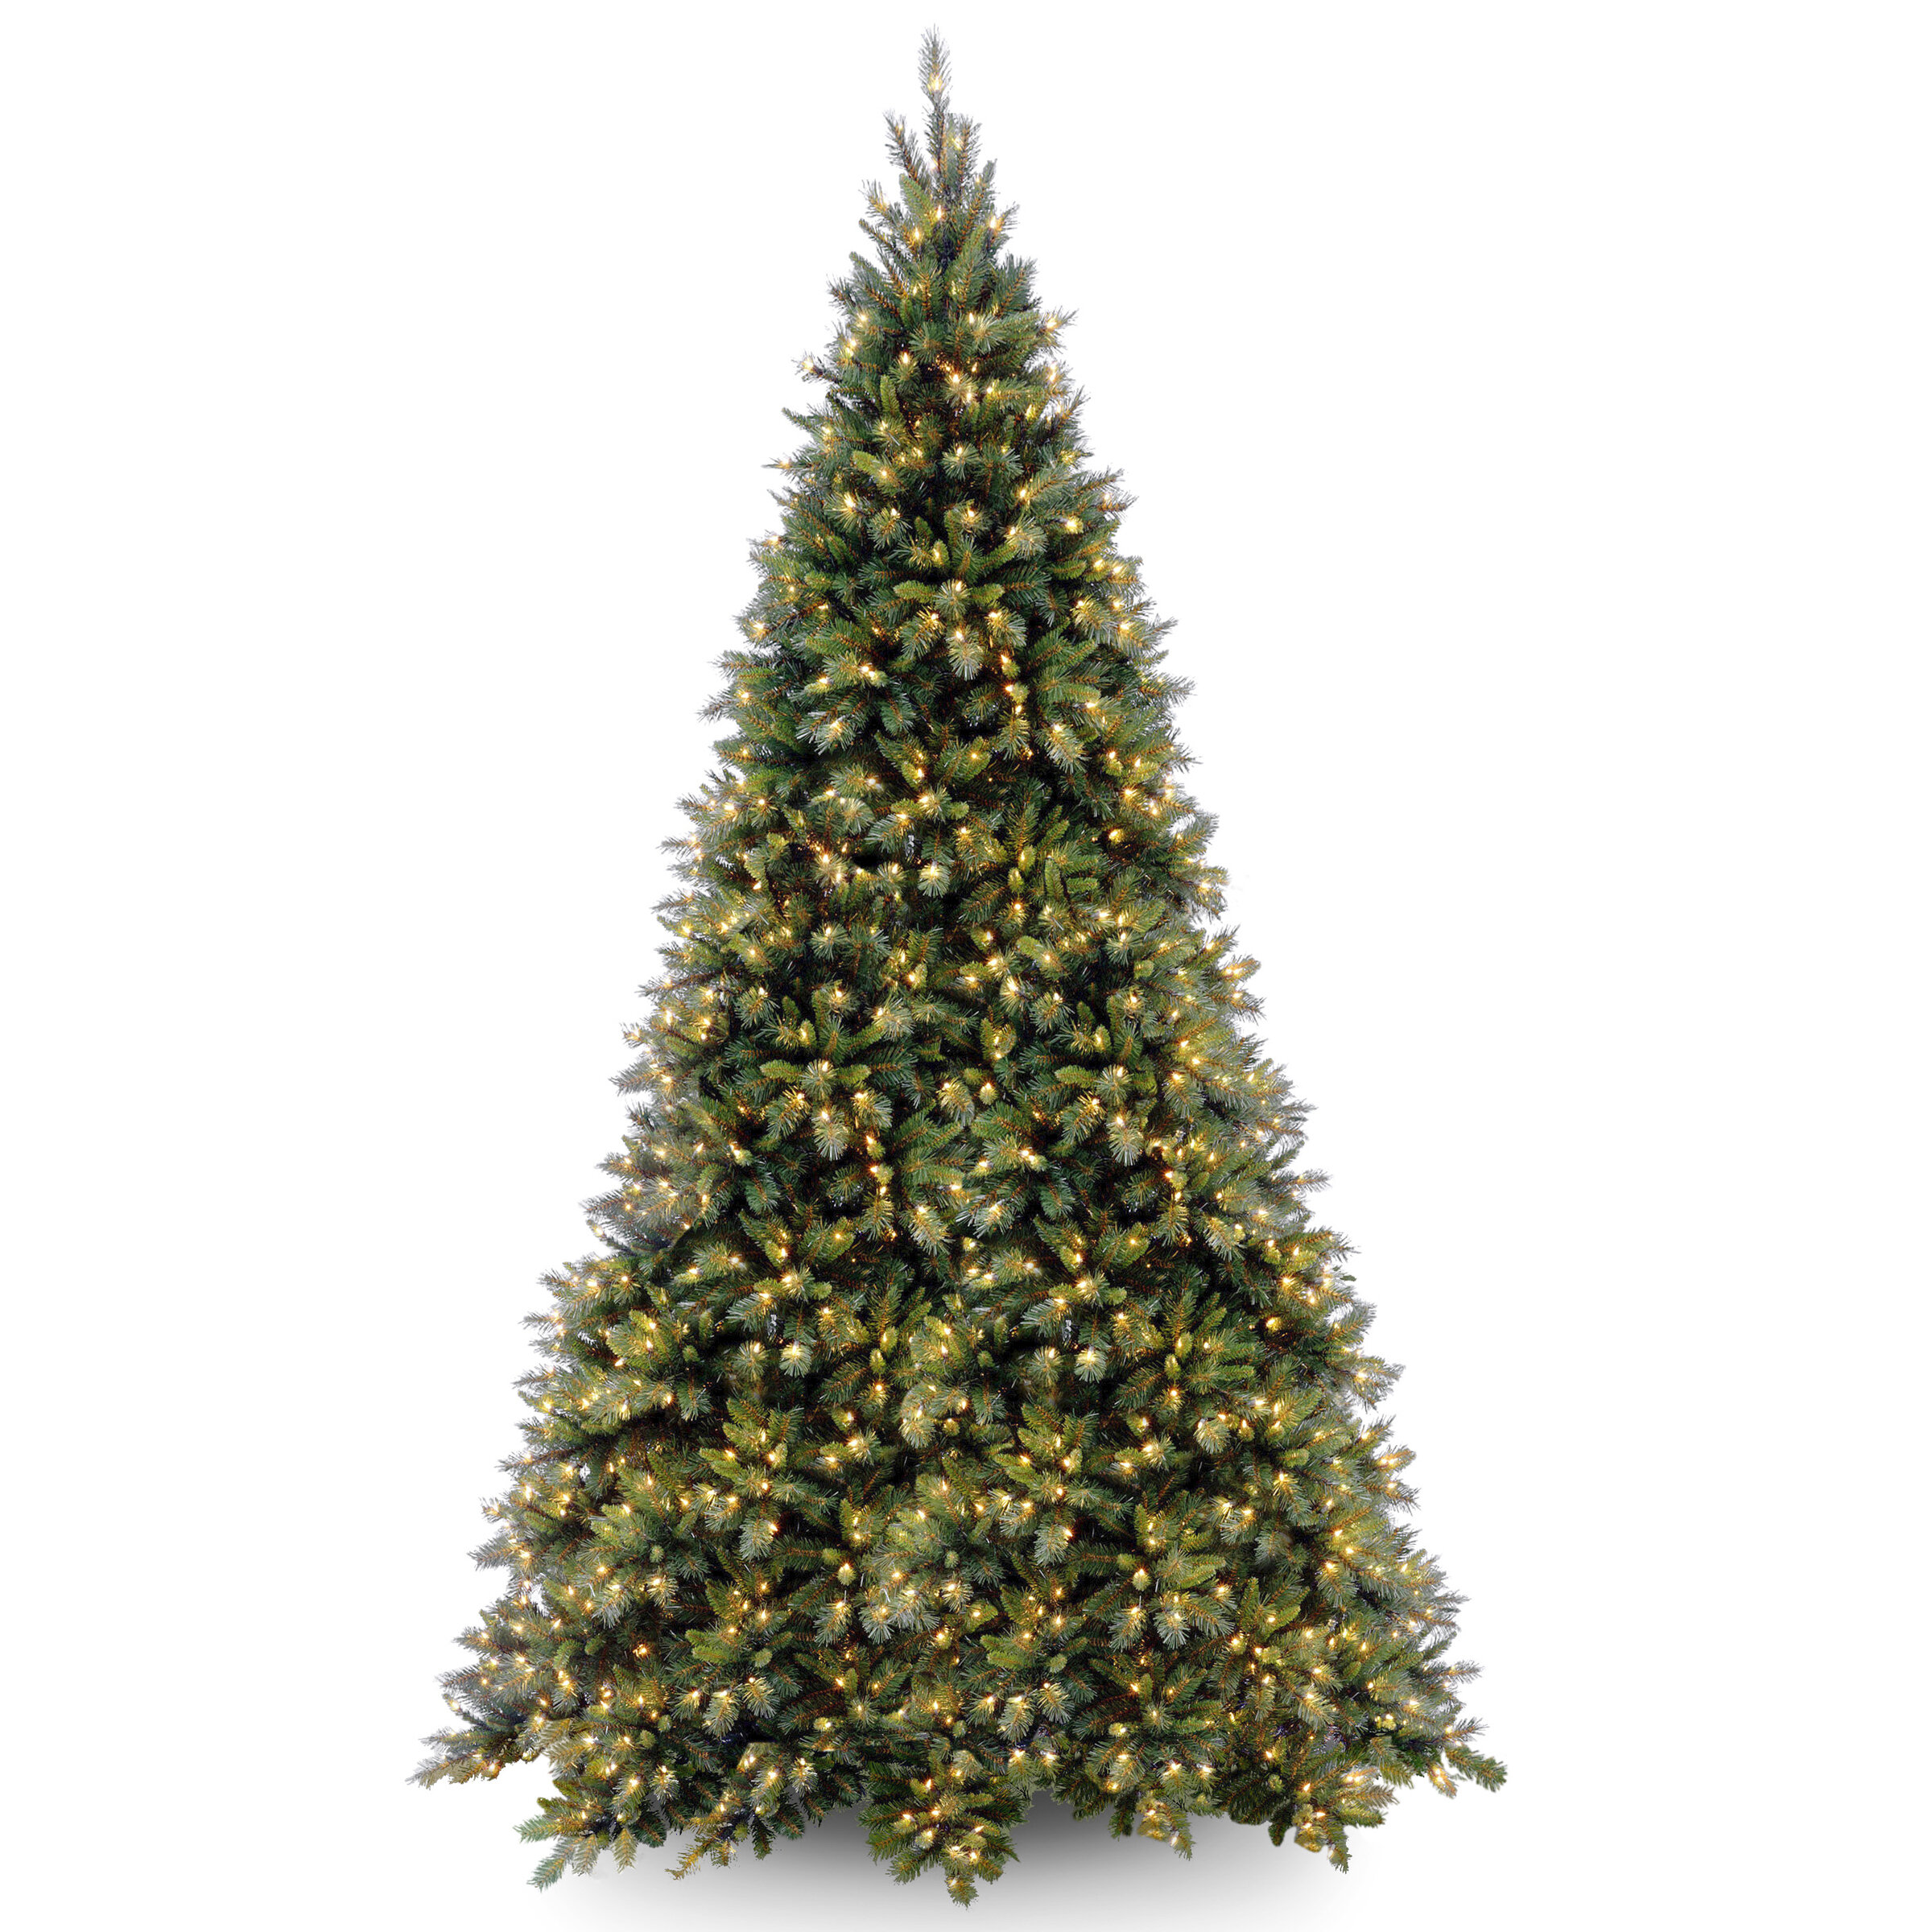 Tiffany Fir 12' Green Artificial Christmas Tree with 1400 Clear Lights and Stand & Reviews | Joss & Main